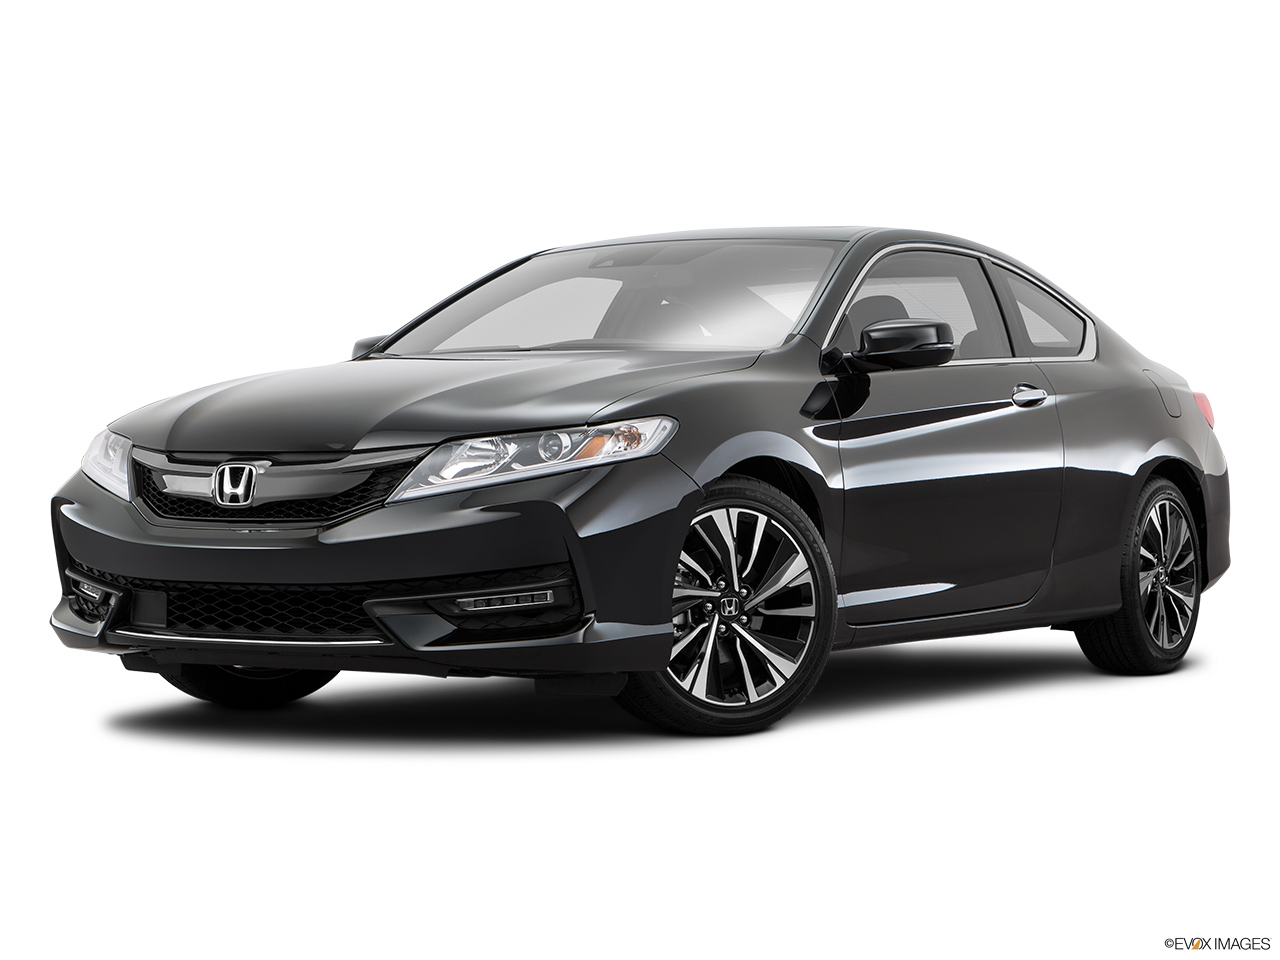 Car pictures list for honda accord coupe 2016 2 4l ex uae for Honda accord ex coupe